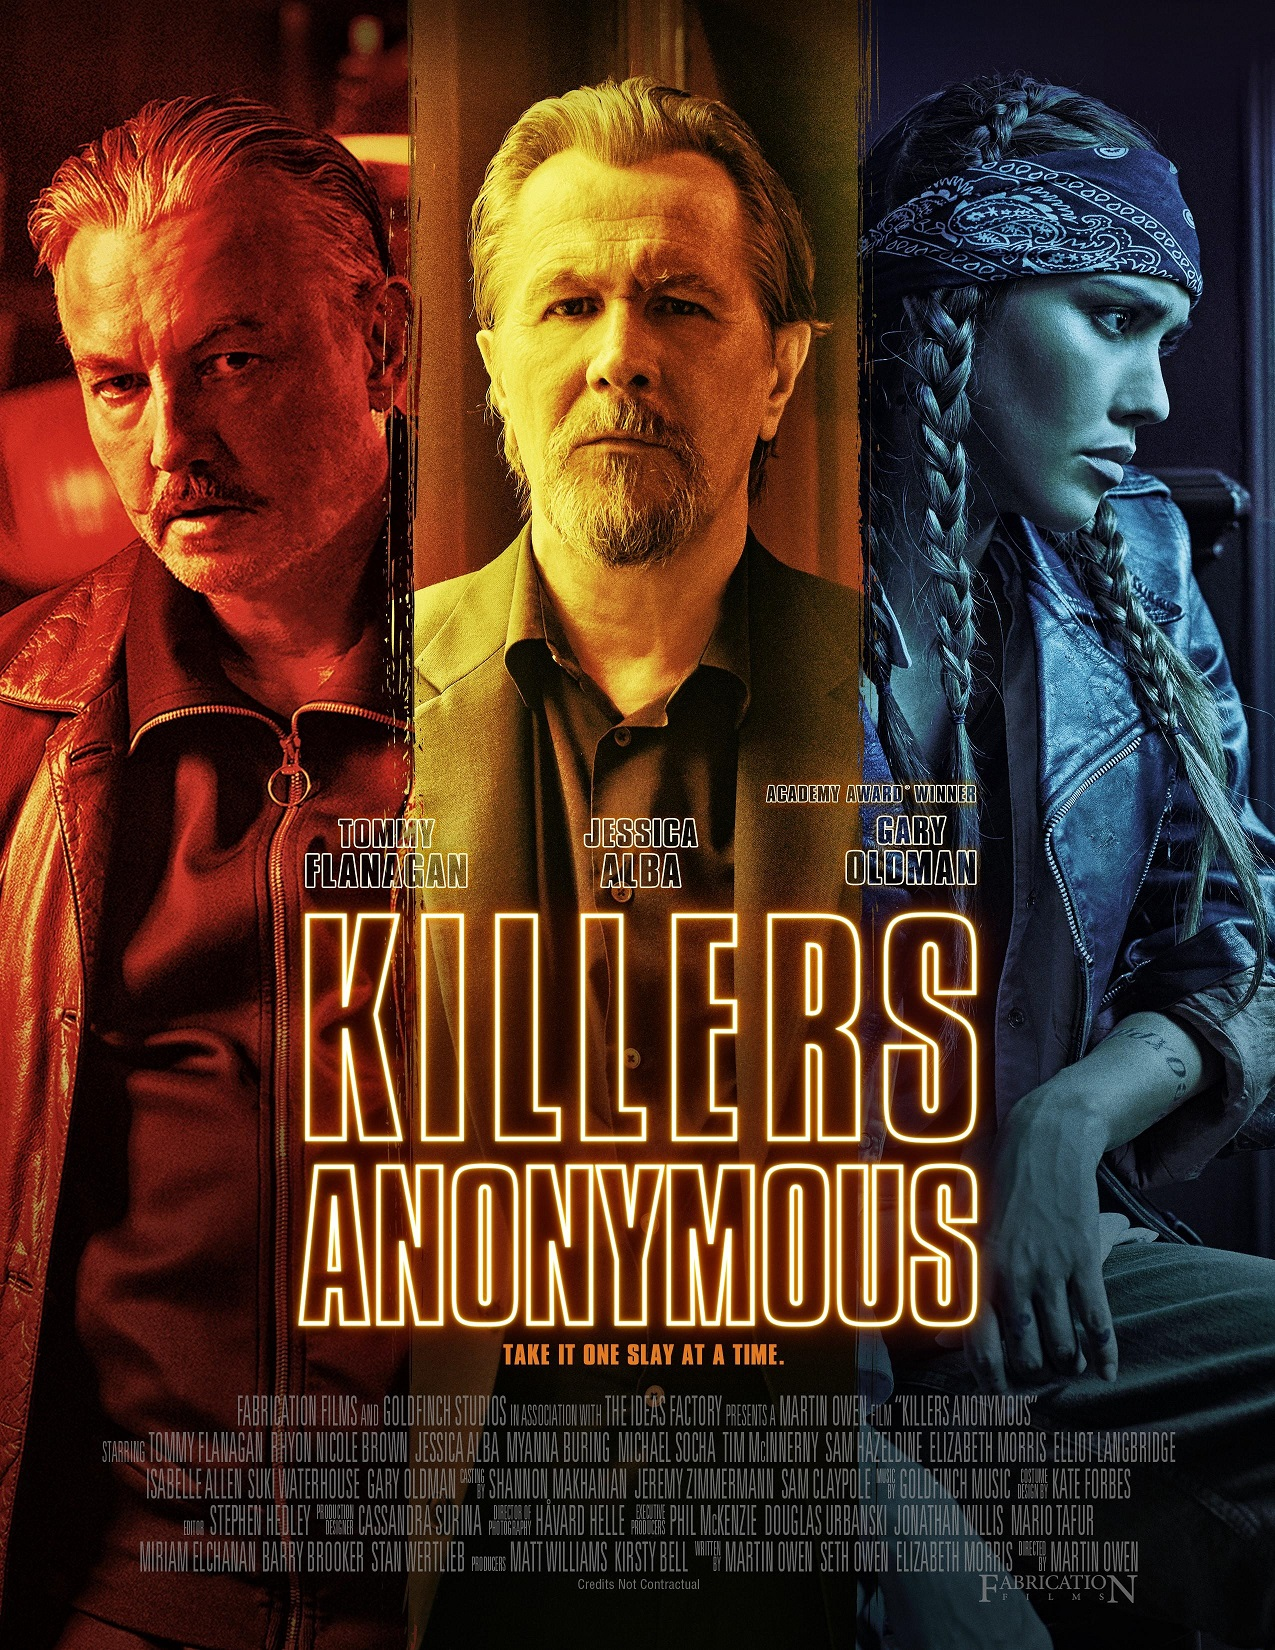 Killers Anonymous Trailer & Poster ""